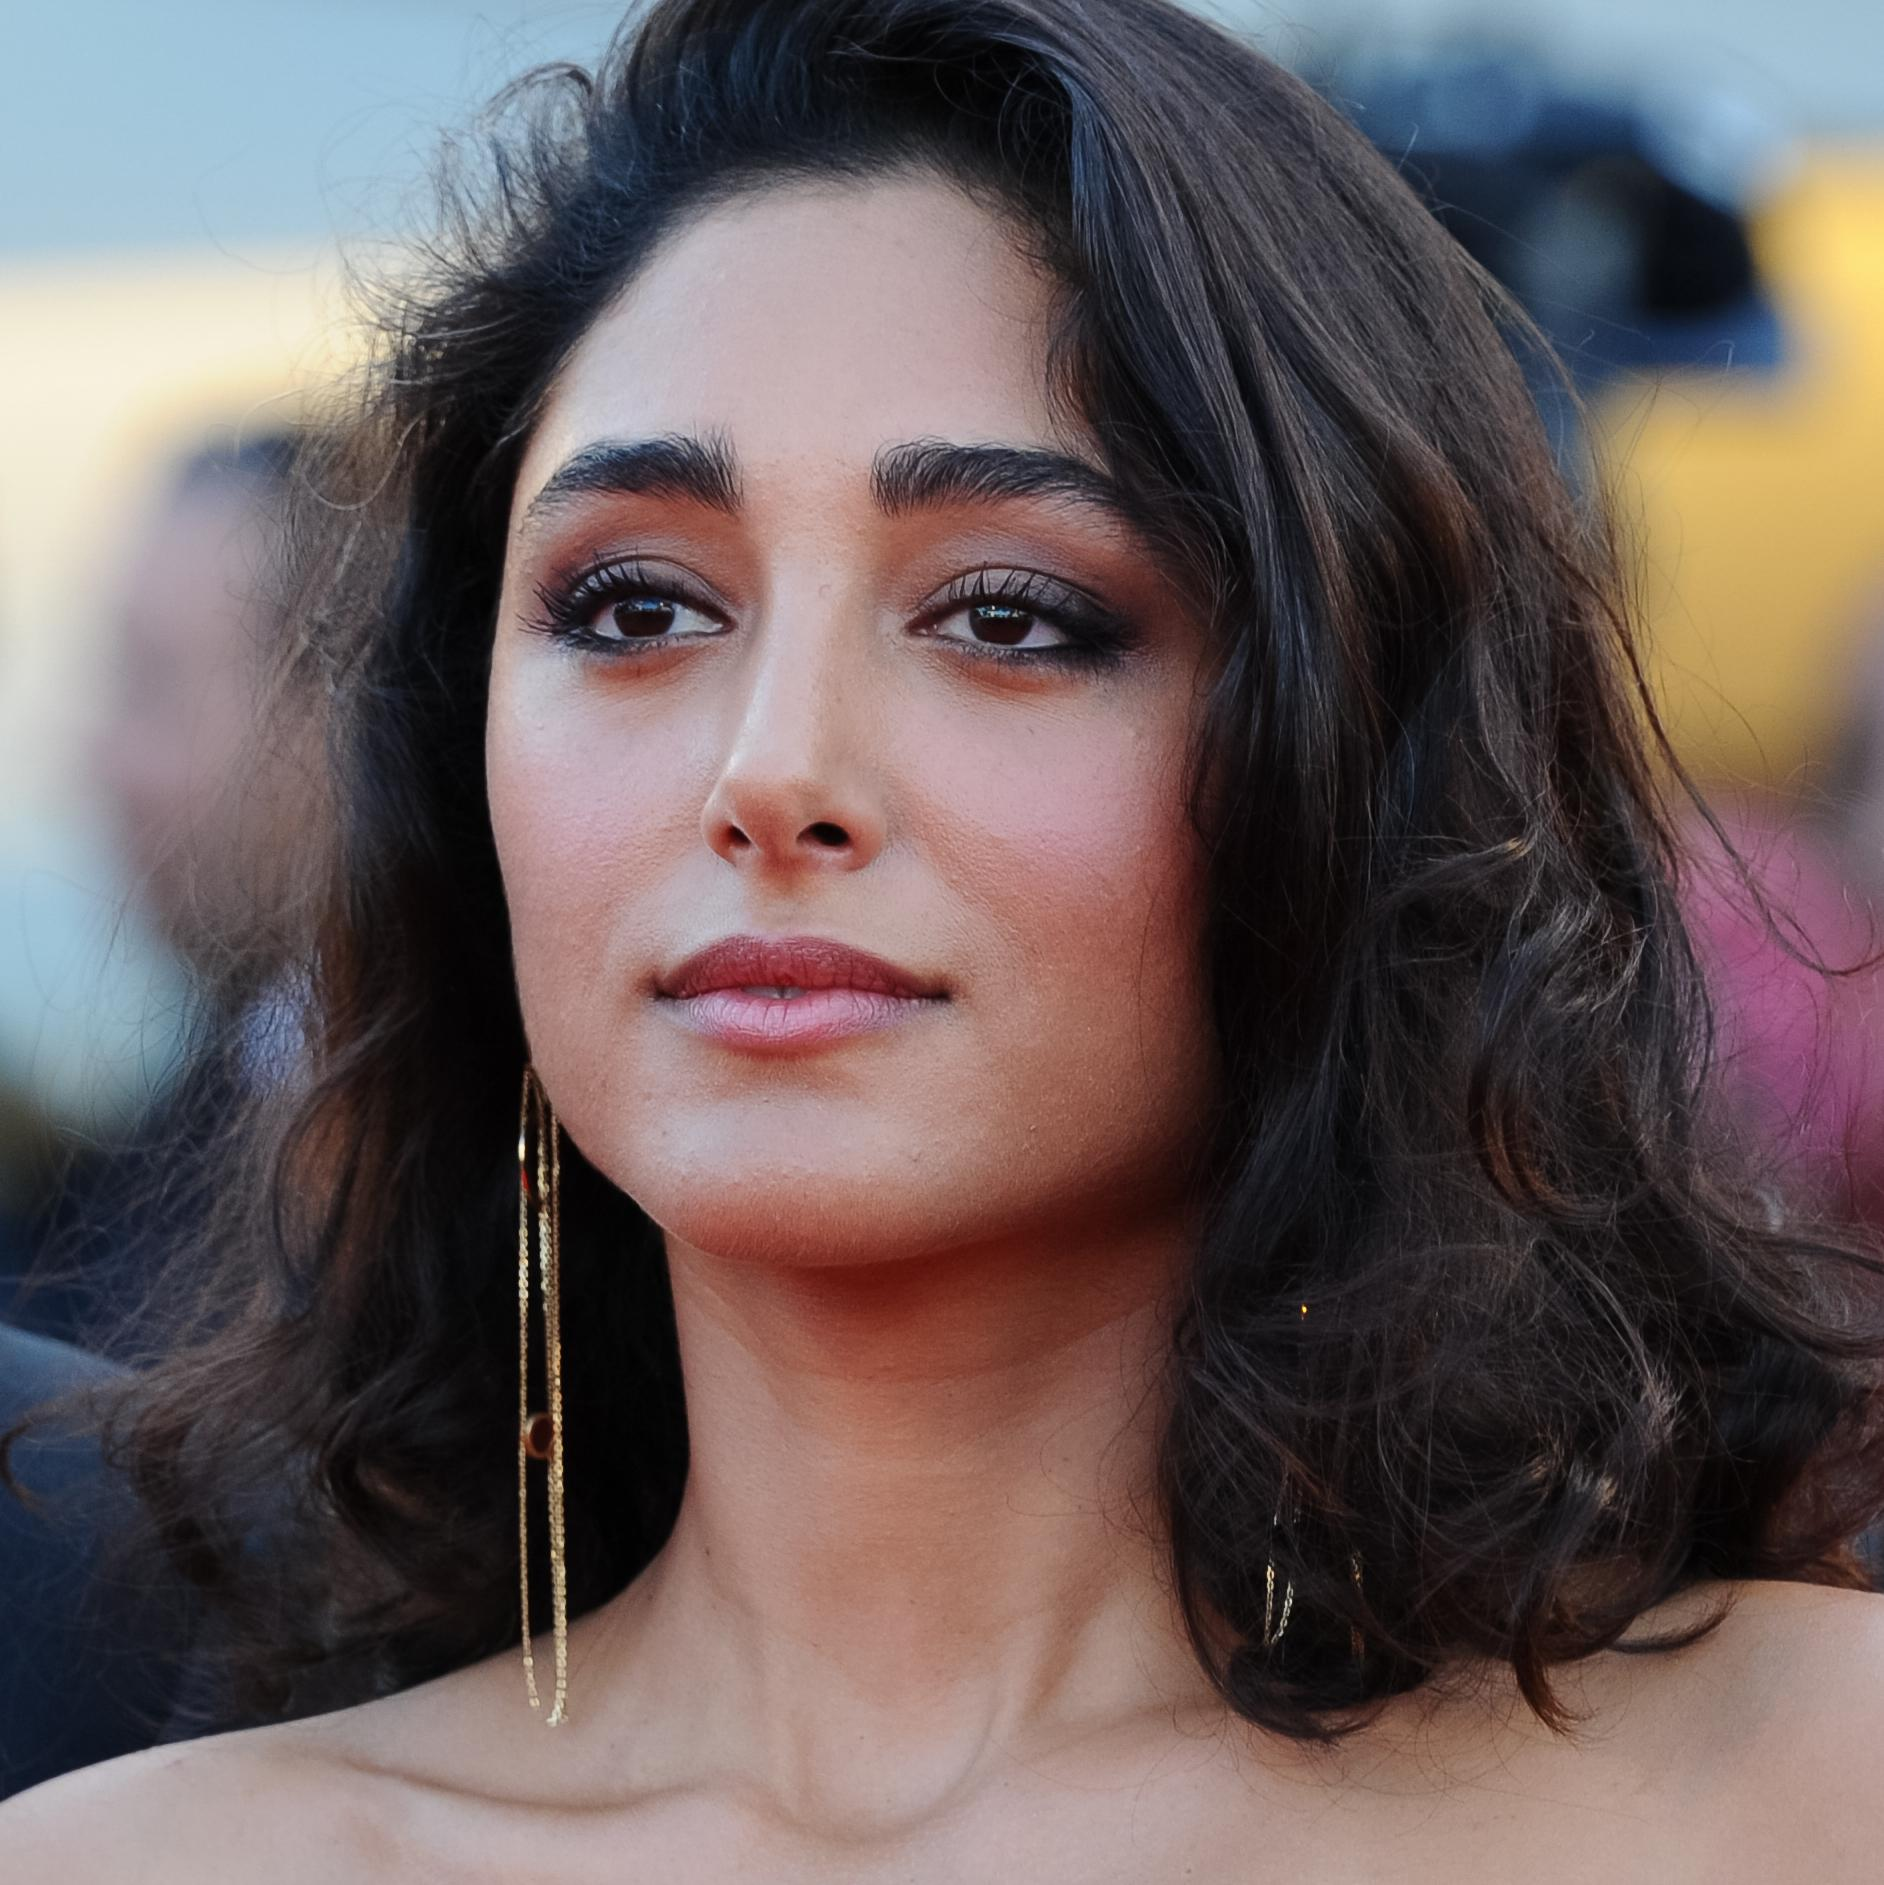 golshifteh farahani pose nue pour d fendre la libert des femmes elle. Black Bedroom Furniture Sets. Home Design Ideas